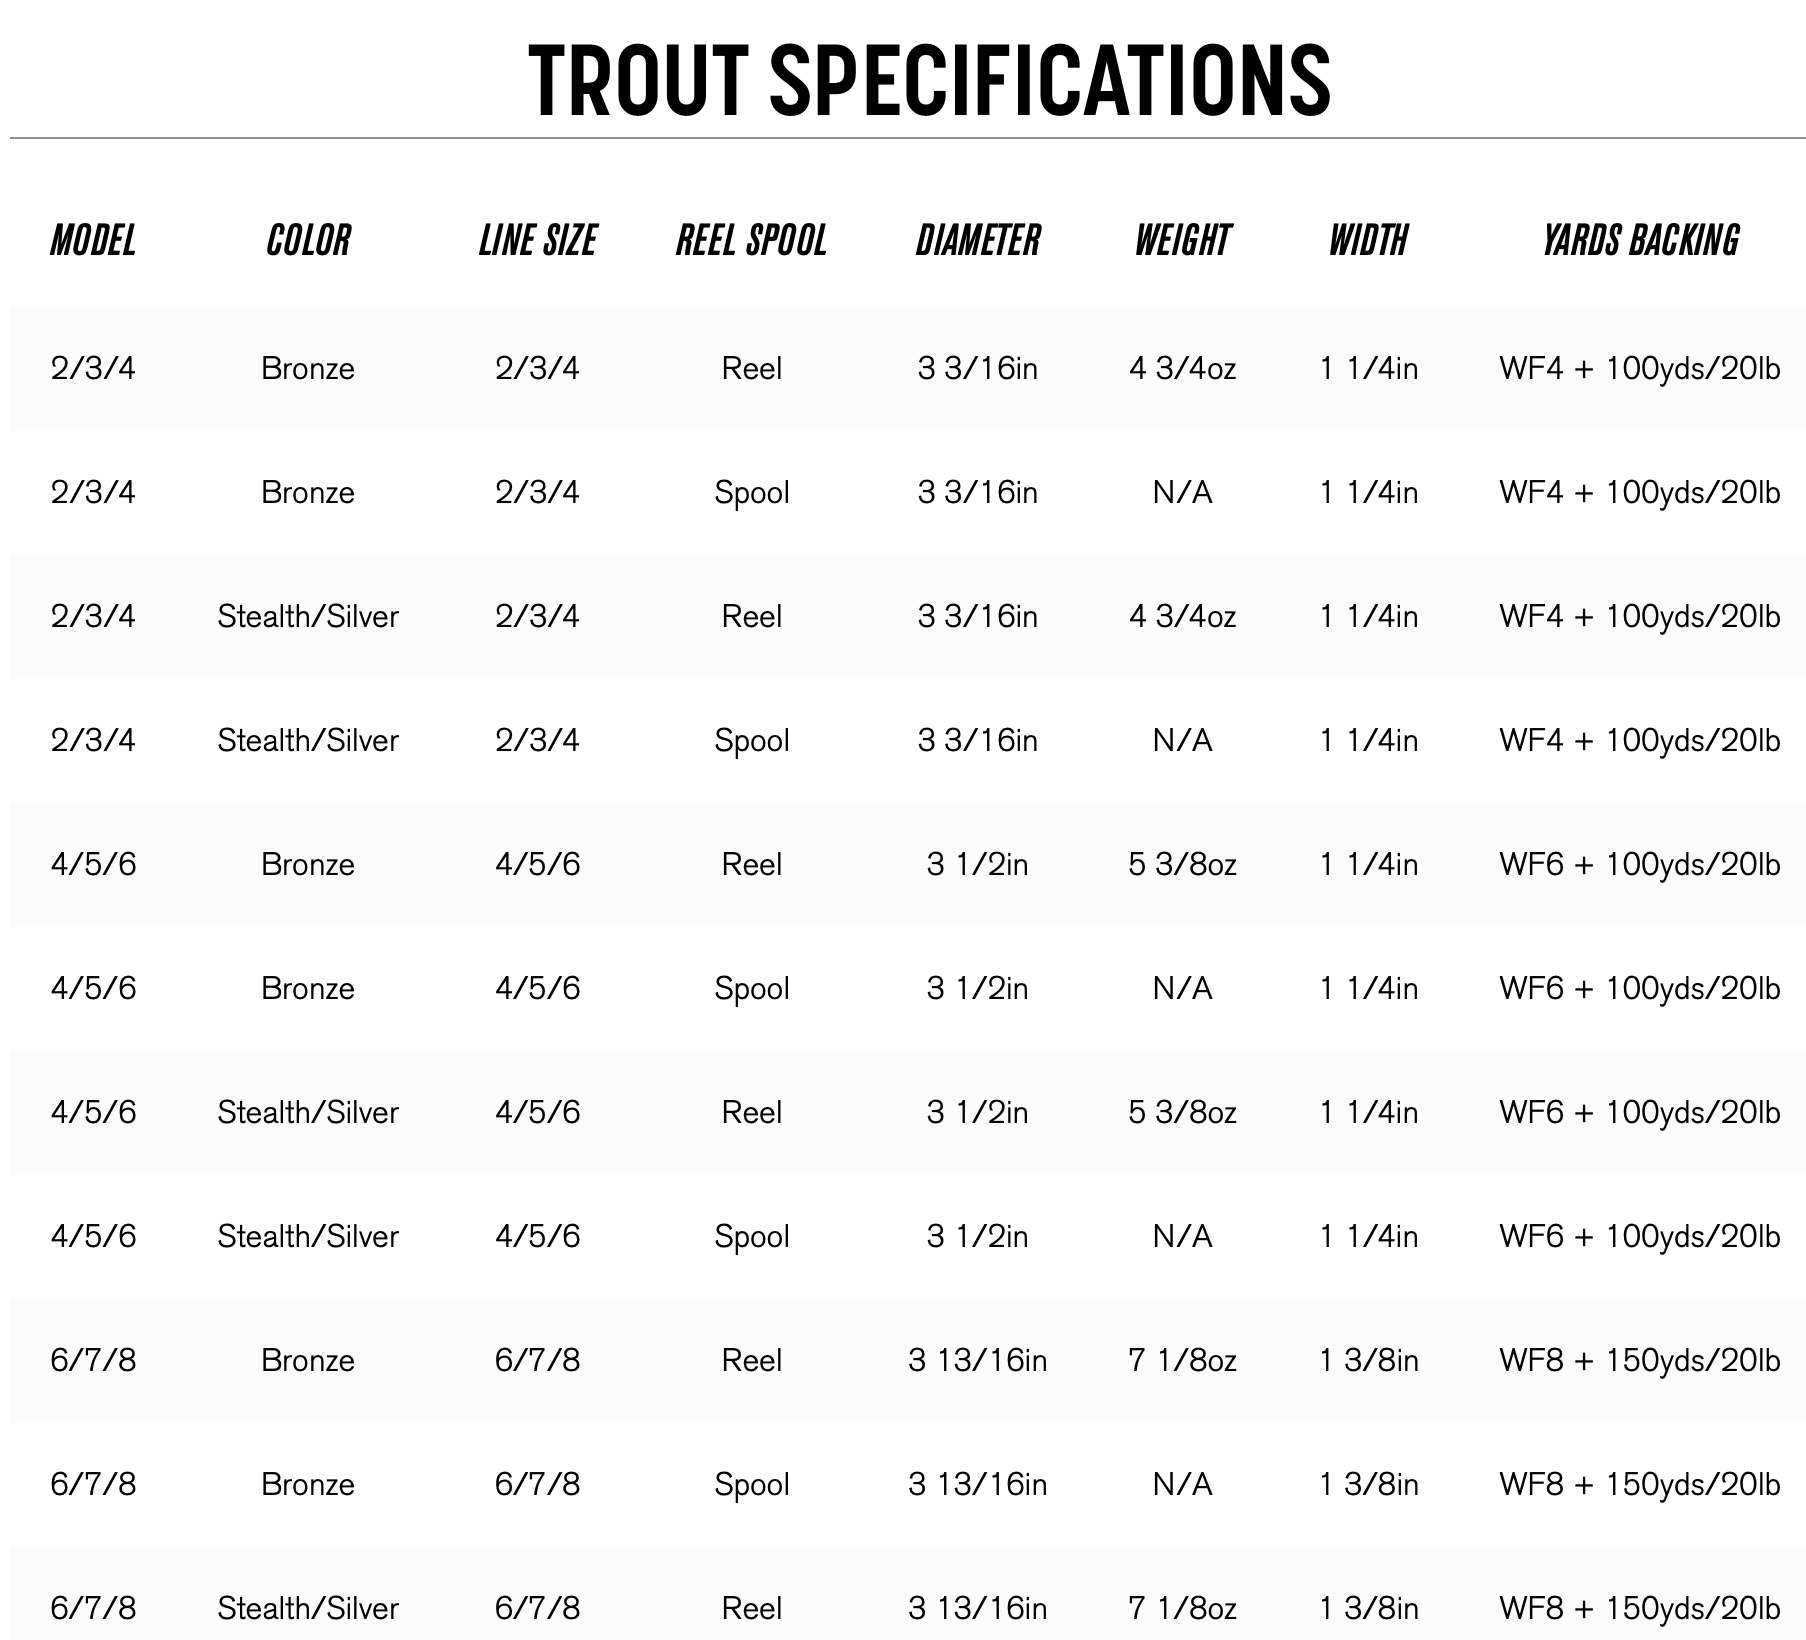 Sage Trout Reel Specifications | Bozeman Fly Shop